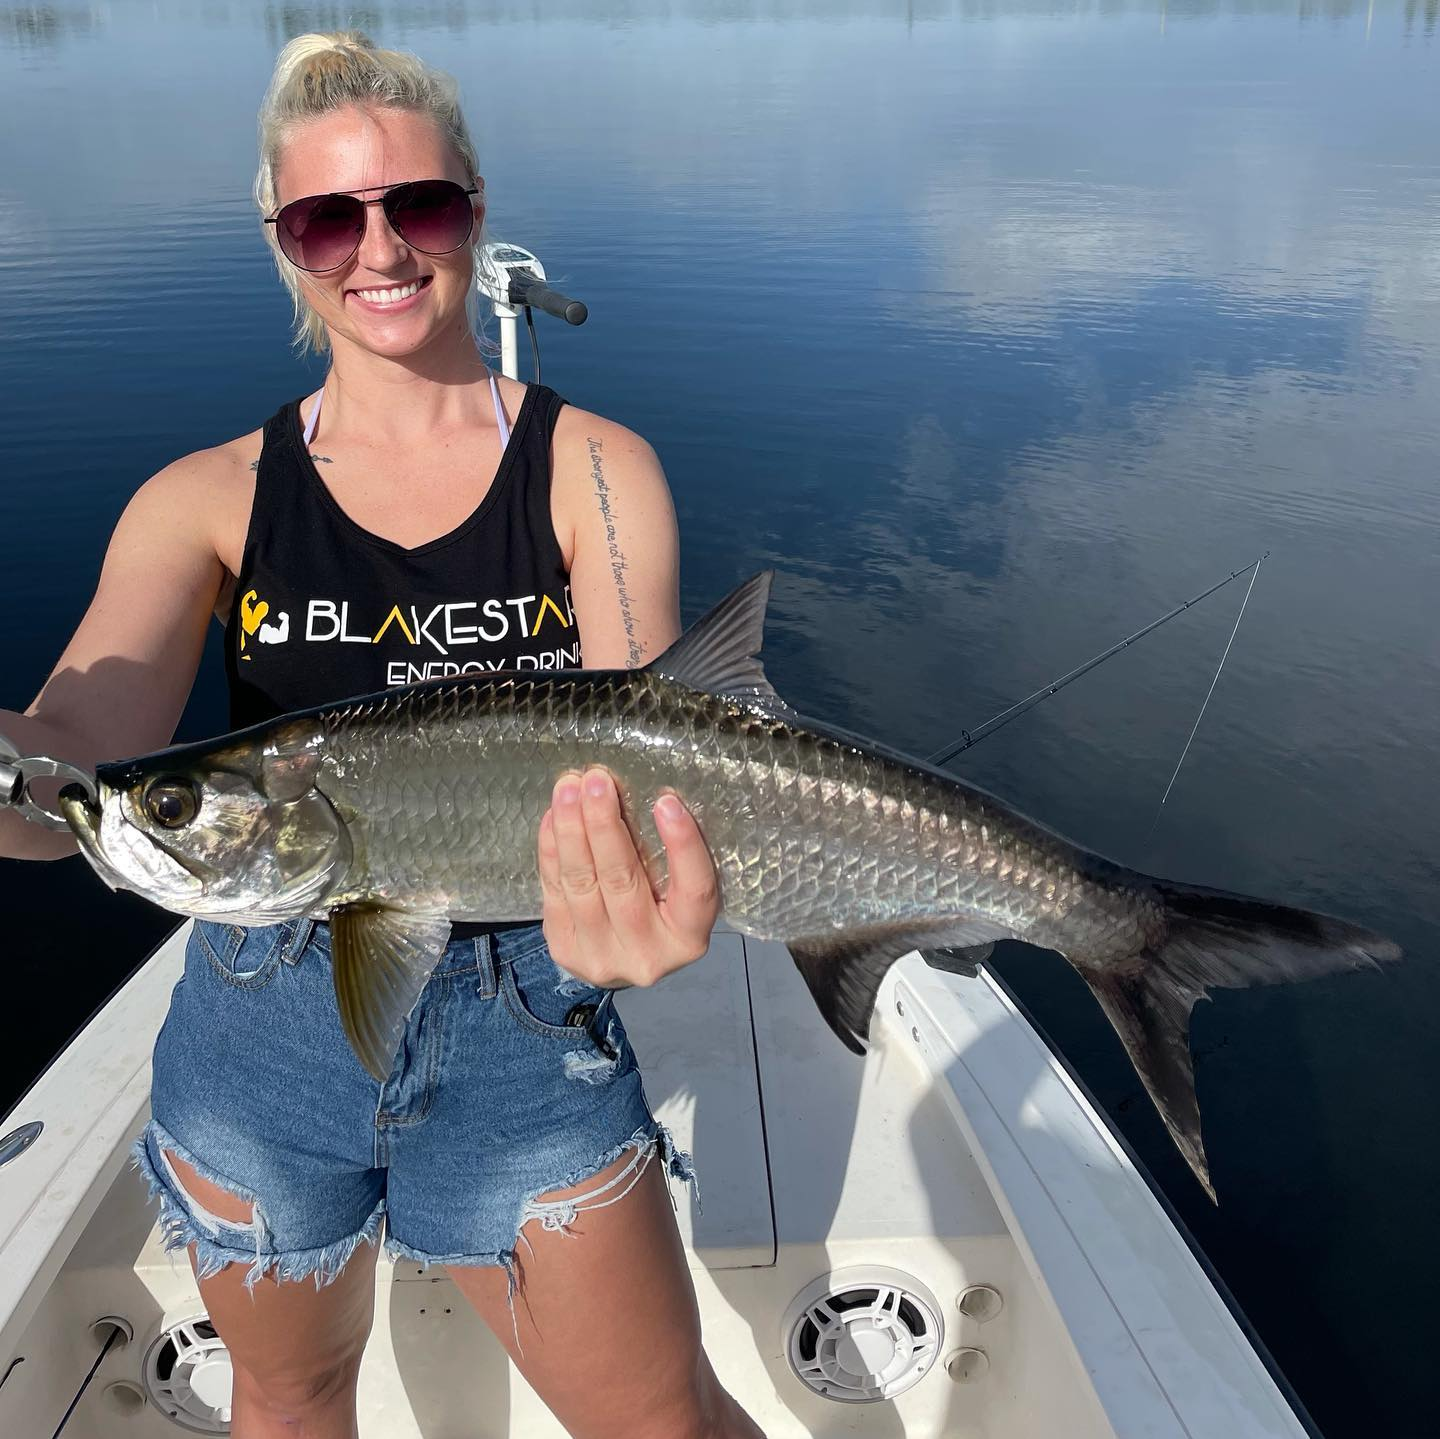 #MAGICCITYSLAM for Lainie, and a Magic City Slam for Hudson this morning aboard my skiff! They came down from North Carolina and had a blast catching their' first 4 Tarpon, their' first 2 Snook, A few Peacock Bass, a 15 lb Jack Crevalle and a Largemouth Bass. Thank you so both much for an action-packed memorable morning fishing with 8 lb spin tackle, and thank you @reeldealadventures for the referral. #GOHARDFISHING #miami #charterfishing #itryreallyhard #miamisluckiestcharterboat #lighttackle @starbrite_com @costasunglasses @pennfishing #GOHARDINTHEPAINT